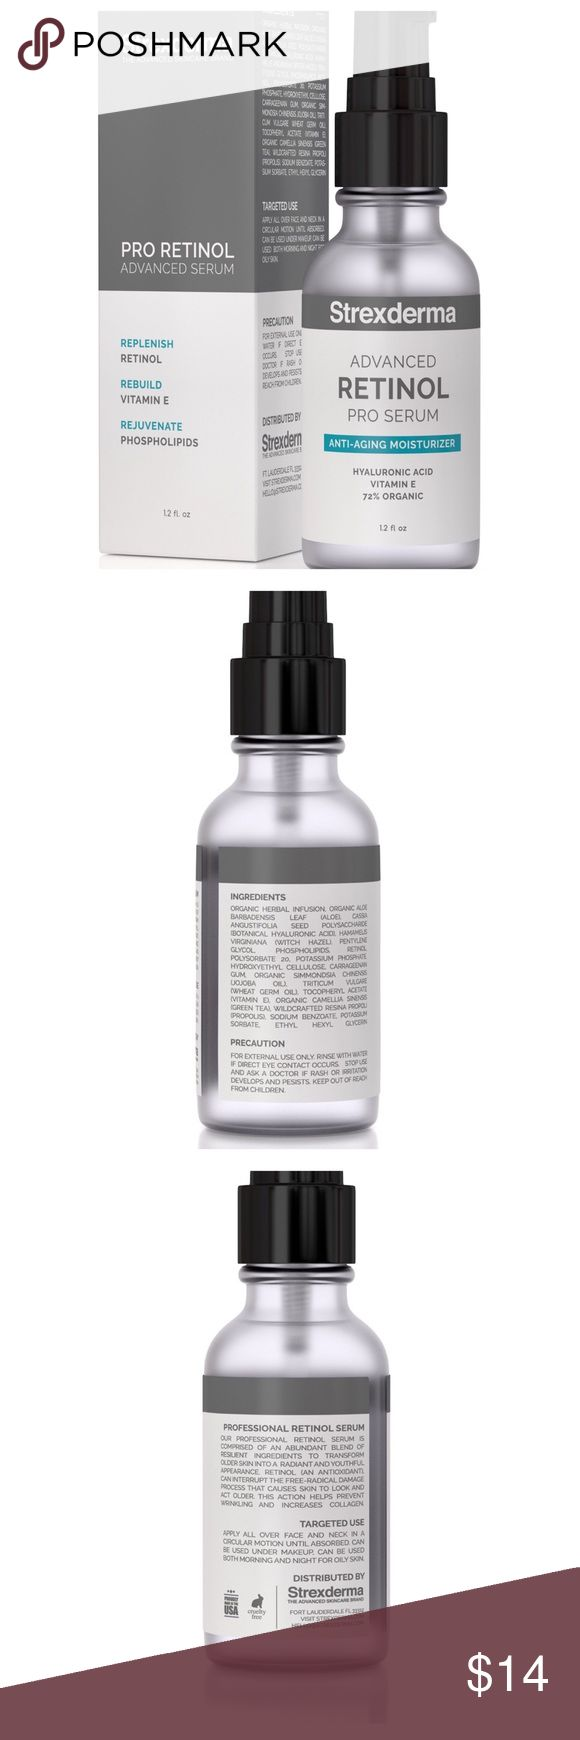 RETINOL VITAMIN C E SERUM 20% HYALURONIC ORGANIC Hyaluronic Acid 20% Vitamin C. Strexderma - 1.2 FL OZ. 3X More Effective Retinol & Vitamin E aid the reproduction of skin moisture, reduce pore sizes to stop Acne, Age spots, Dry Skin & Wrinkles!Synergistically blended Pure Retinol and Organic Vitamin E is the core of Retinol moisturizing anti aging serum. These two powerhouse ingredients are the most effective way to naturally retain 18X more of your skins moisture level. Clinical grade…